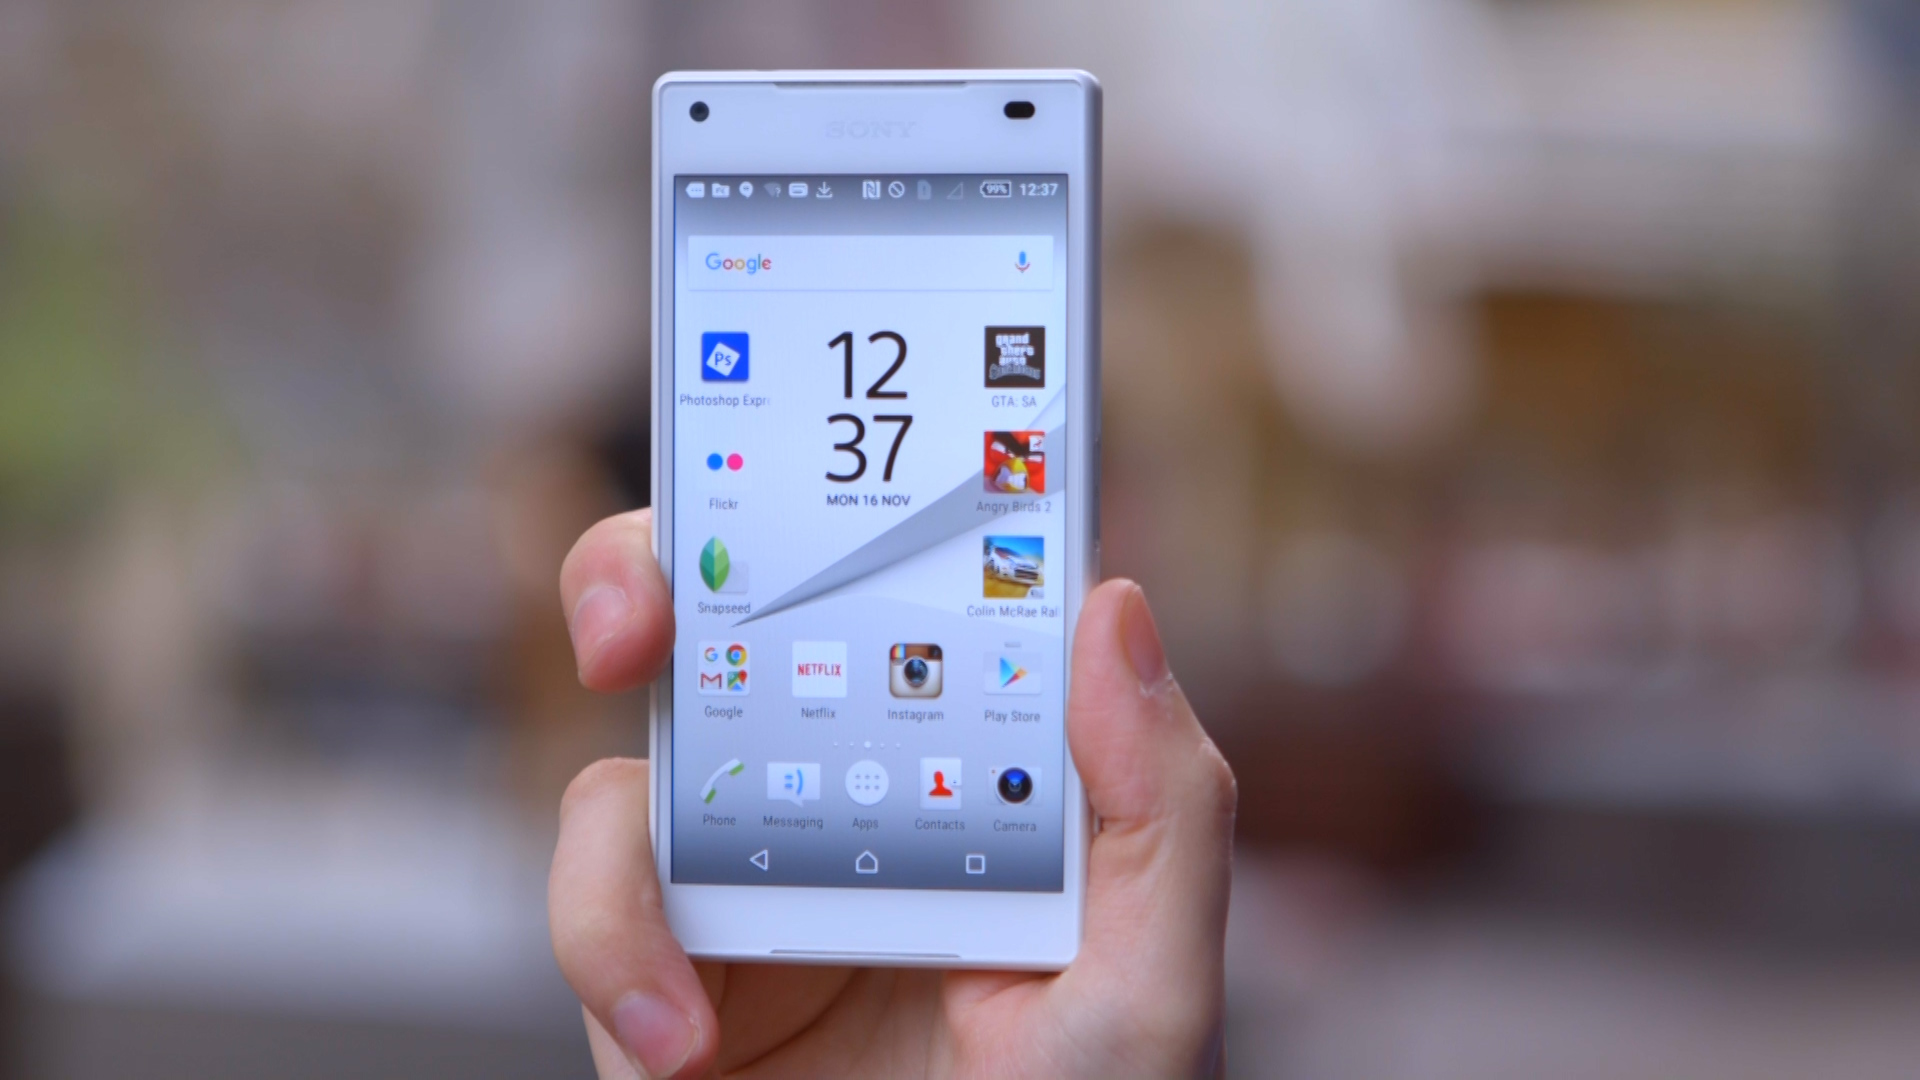 Video: Sony's Xperia Z5 Compact is one of the best mini phones around